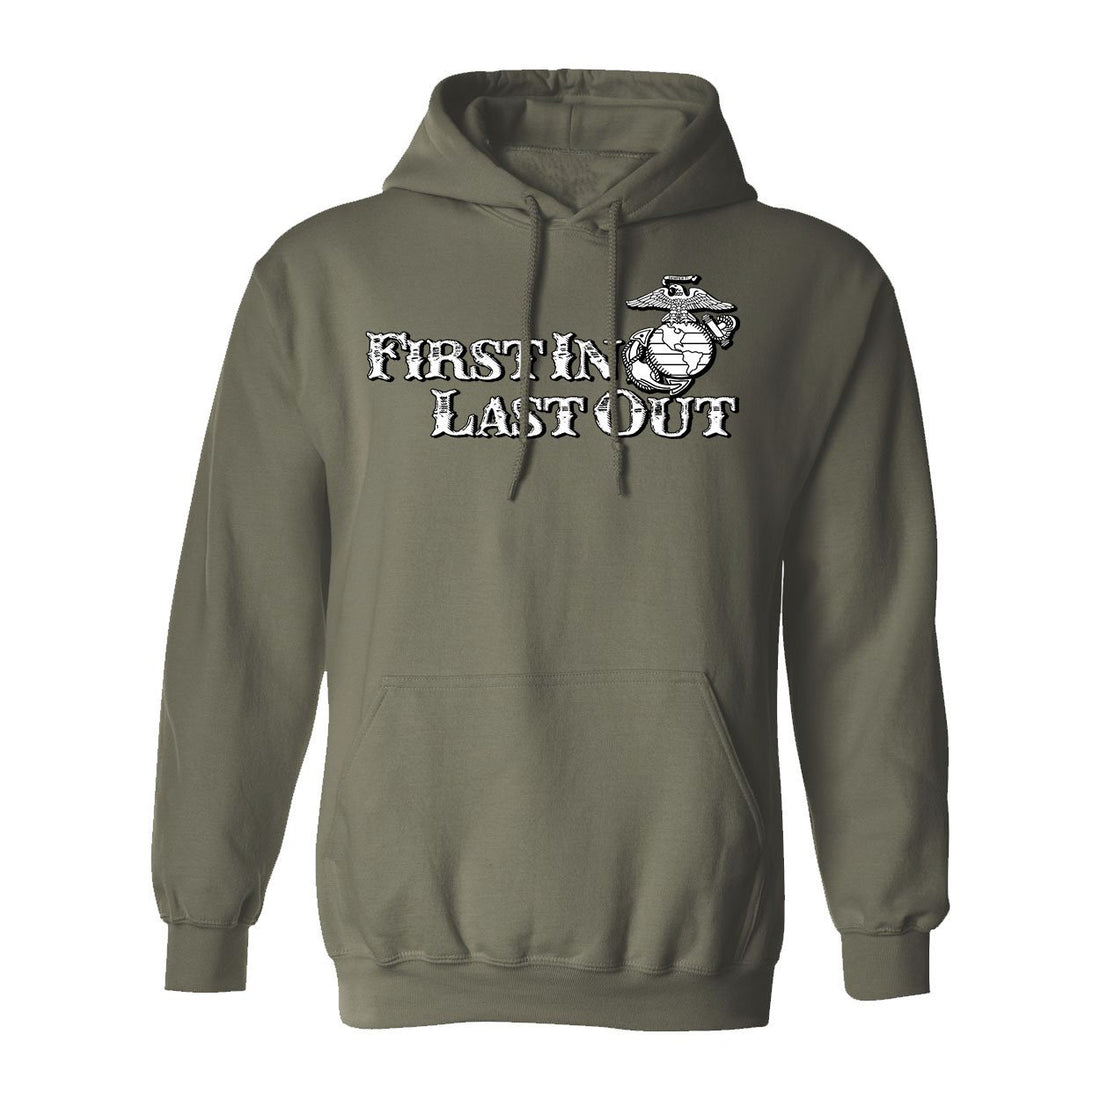 Marines First in, Last Out Hoodie